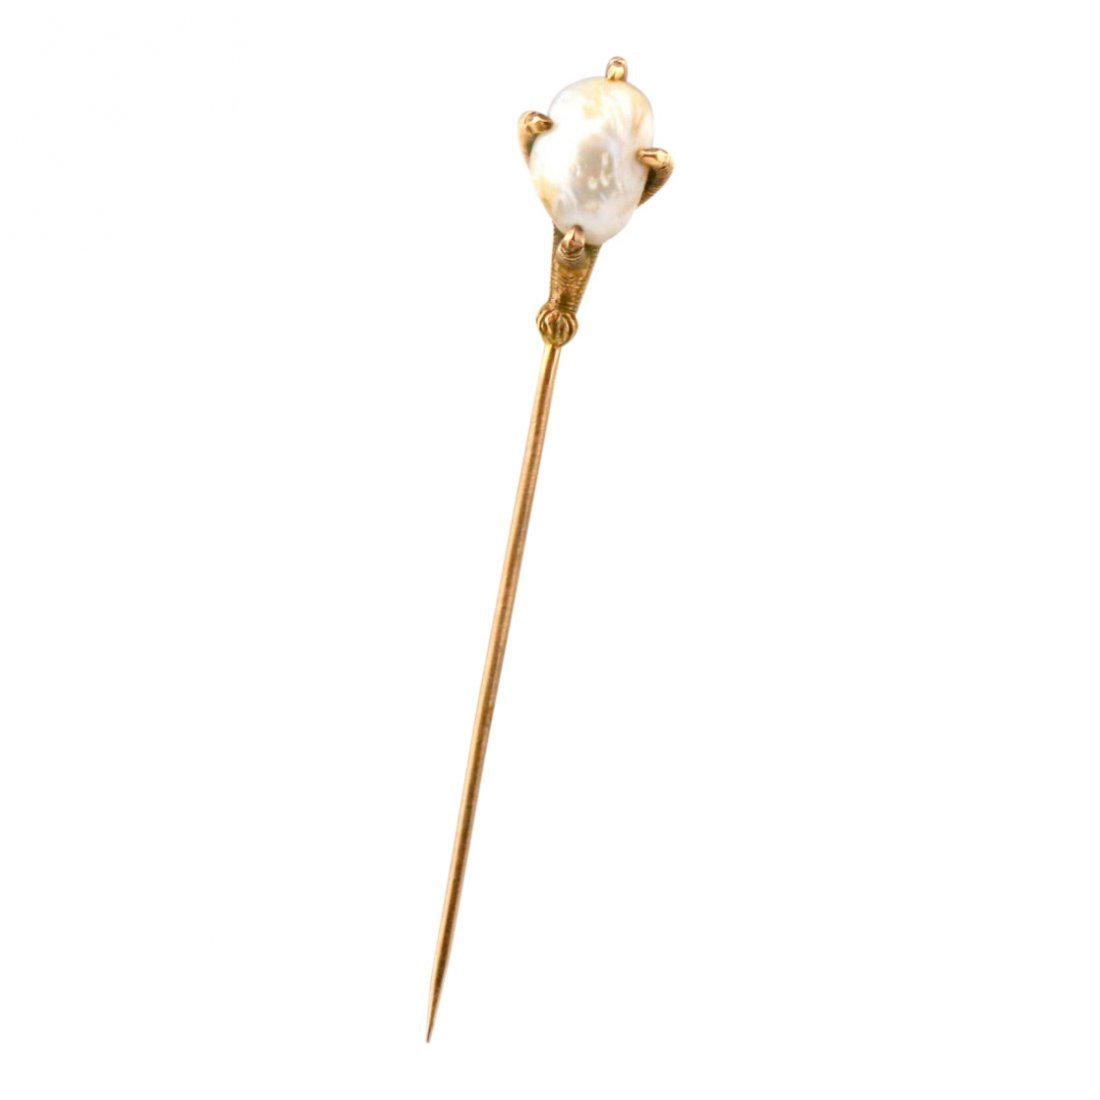 Antique Victorian 14K Gold River Pearl Stick Pin